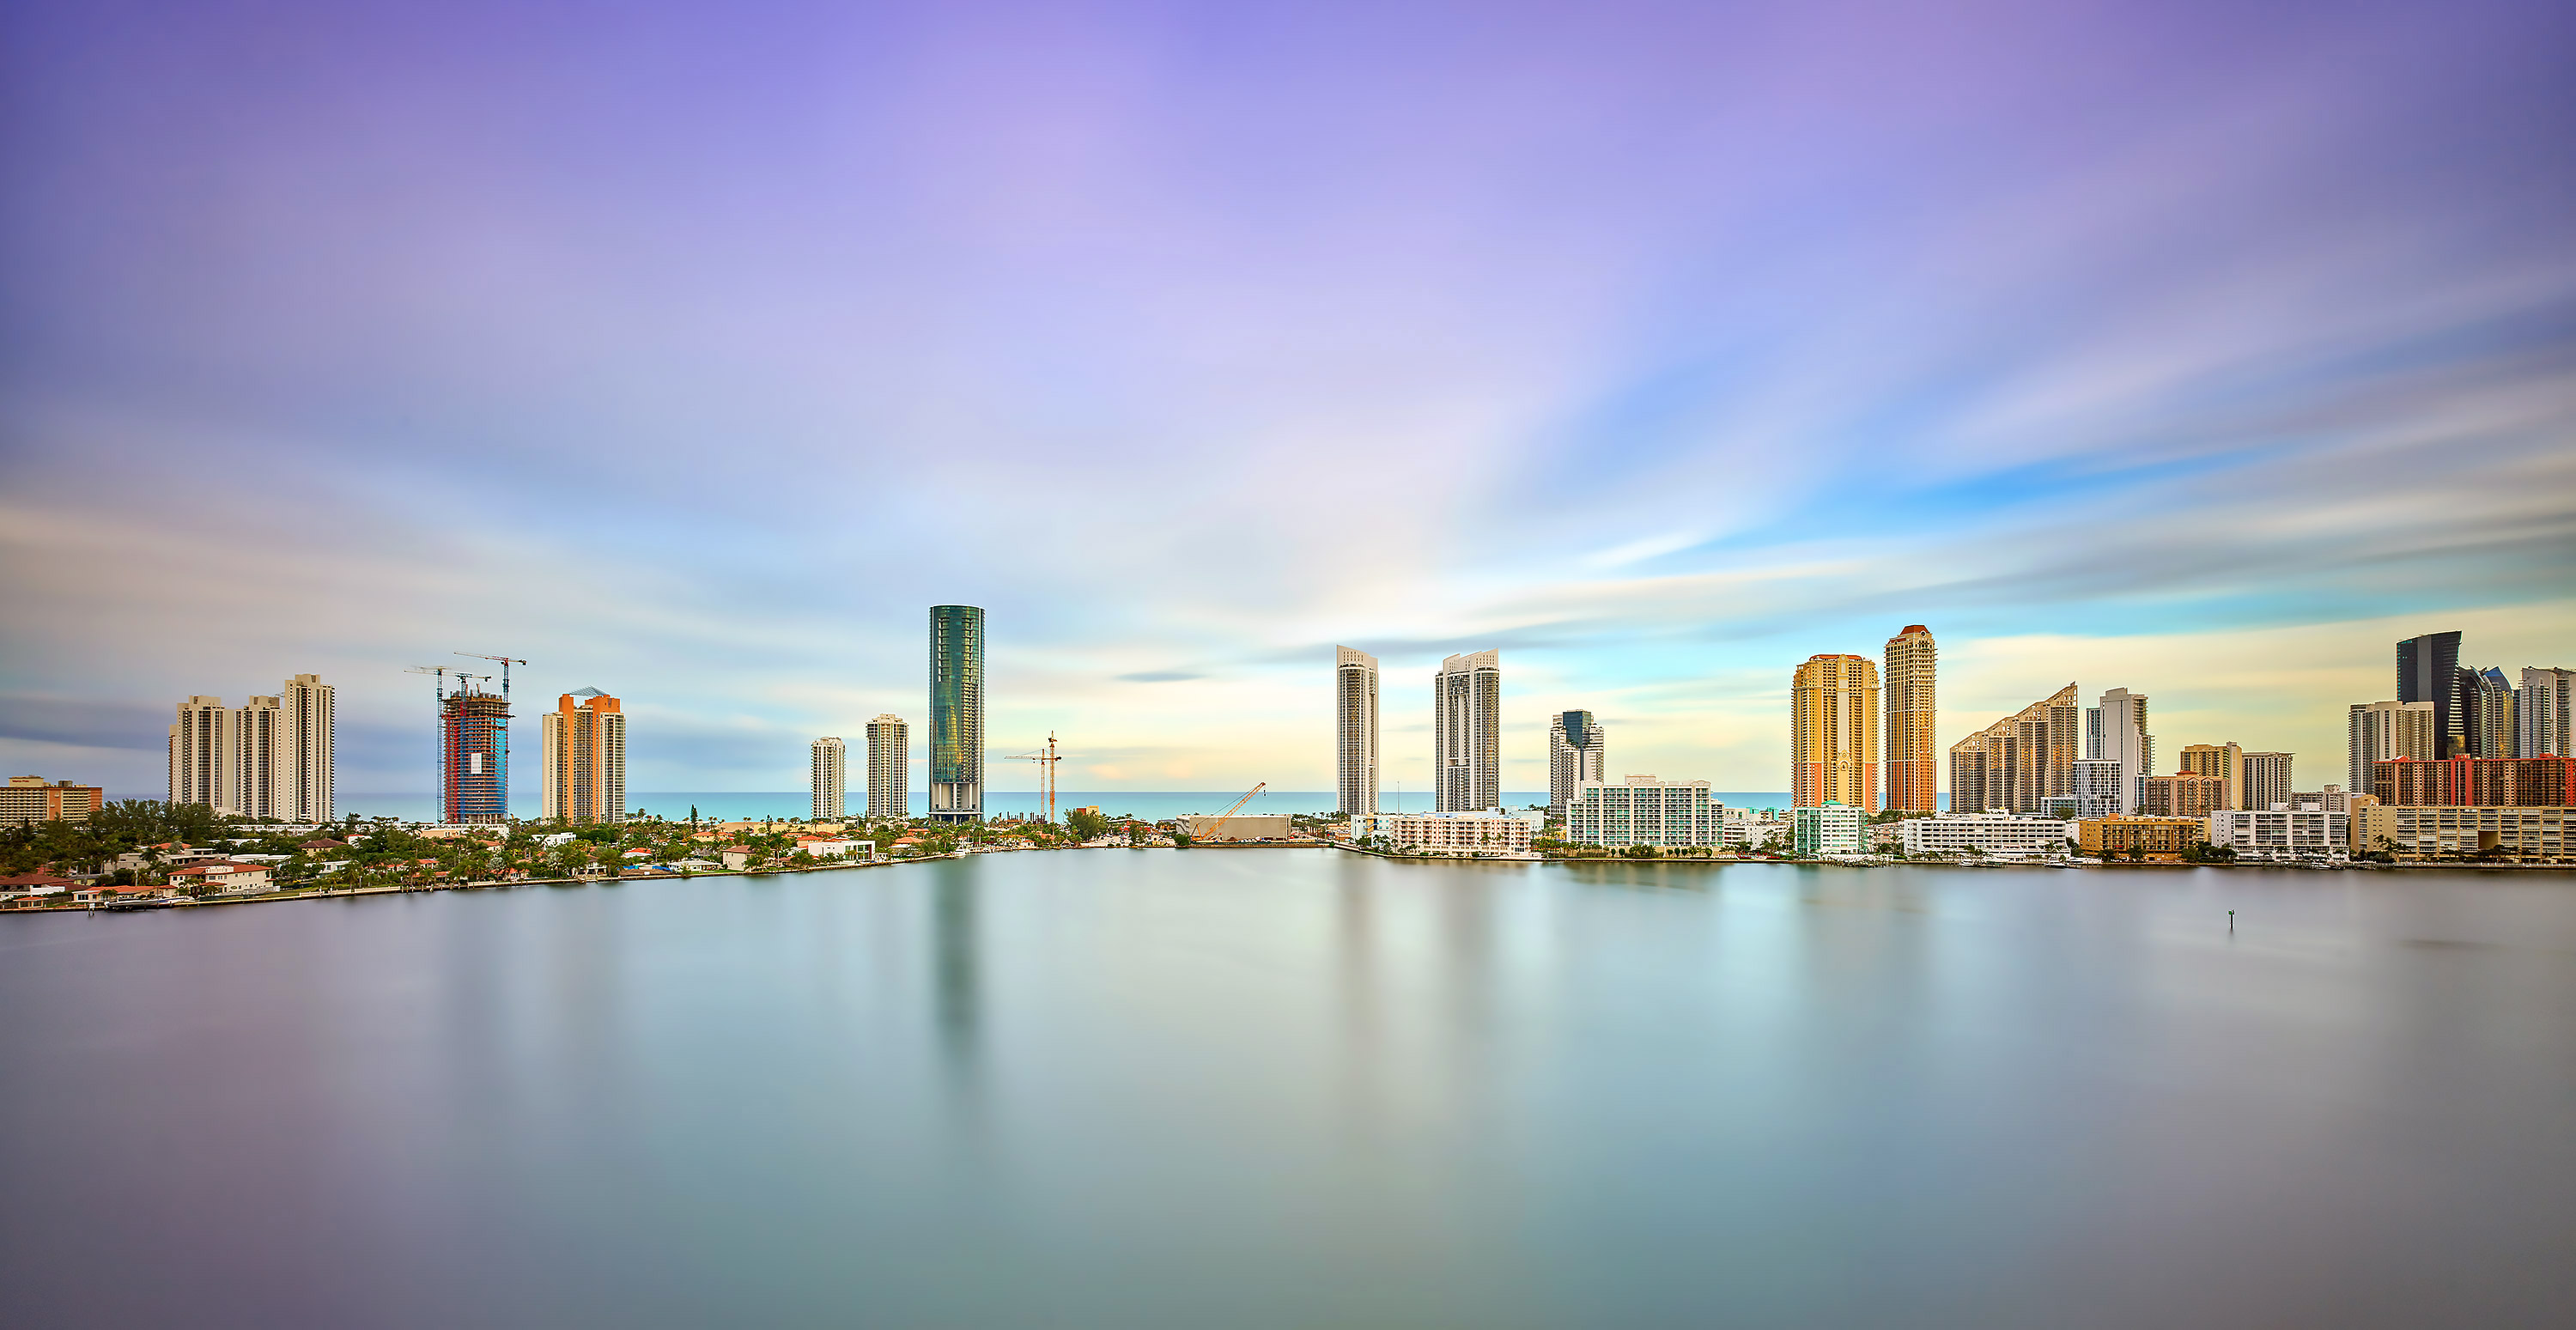 Aventura-Miami-Bay-Ocean-View-High-Rise-Architecture-Photographer